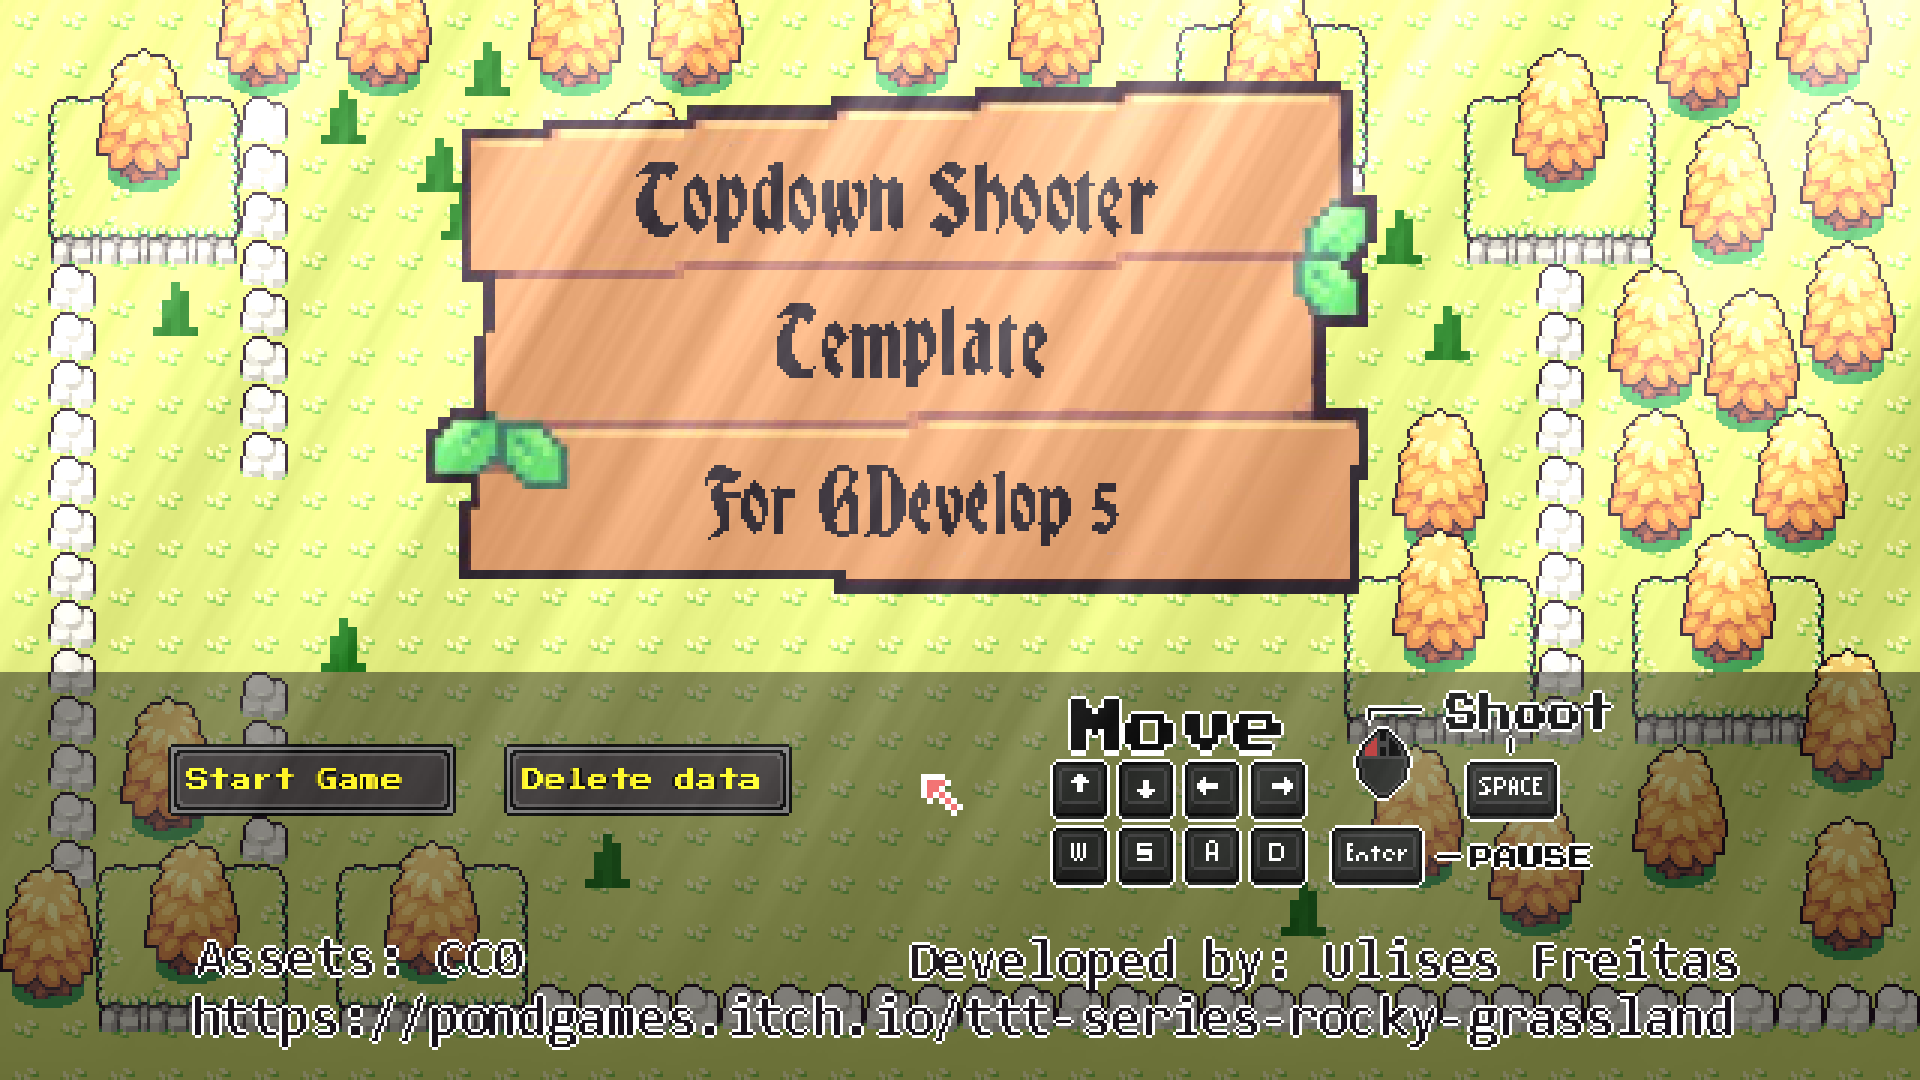 GDevelop - Shootalia - Top Down Shooter Template